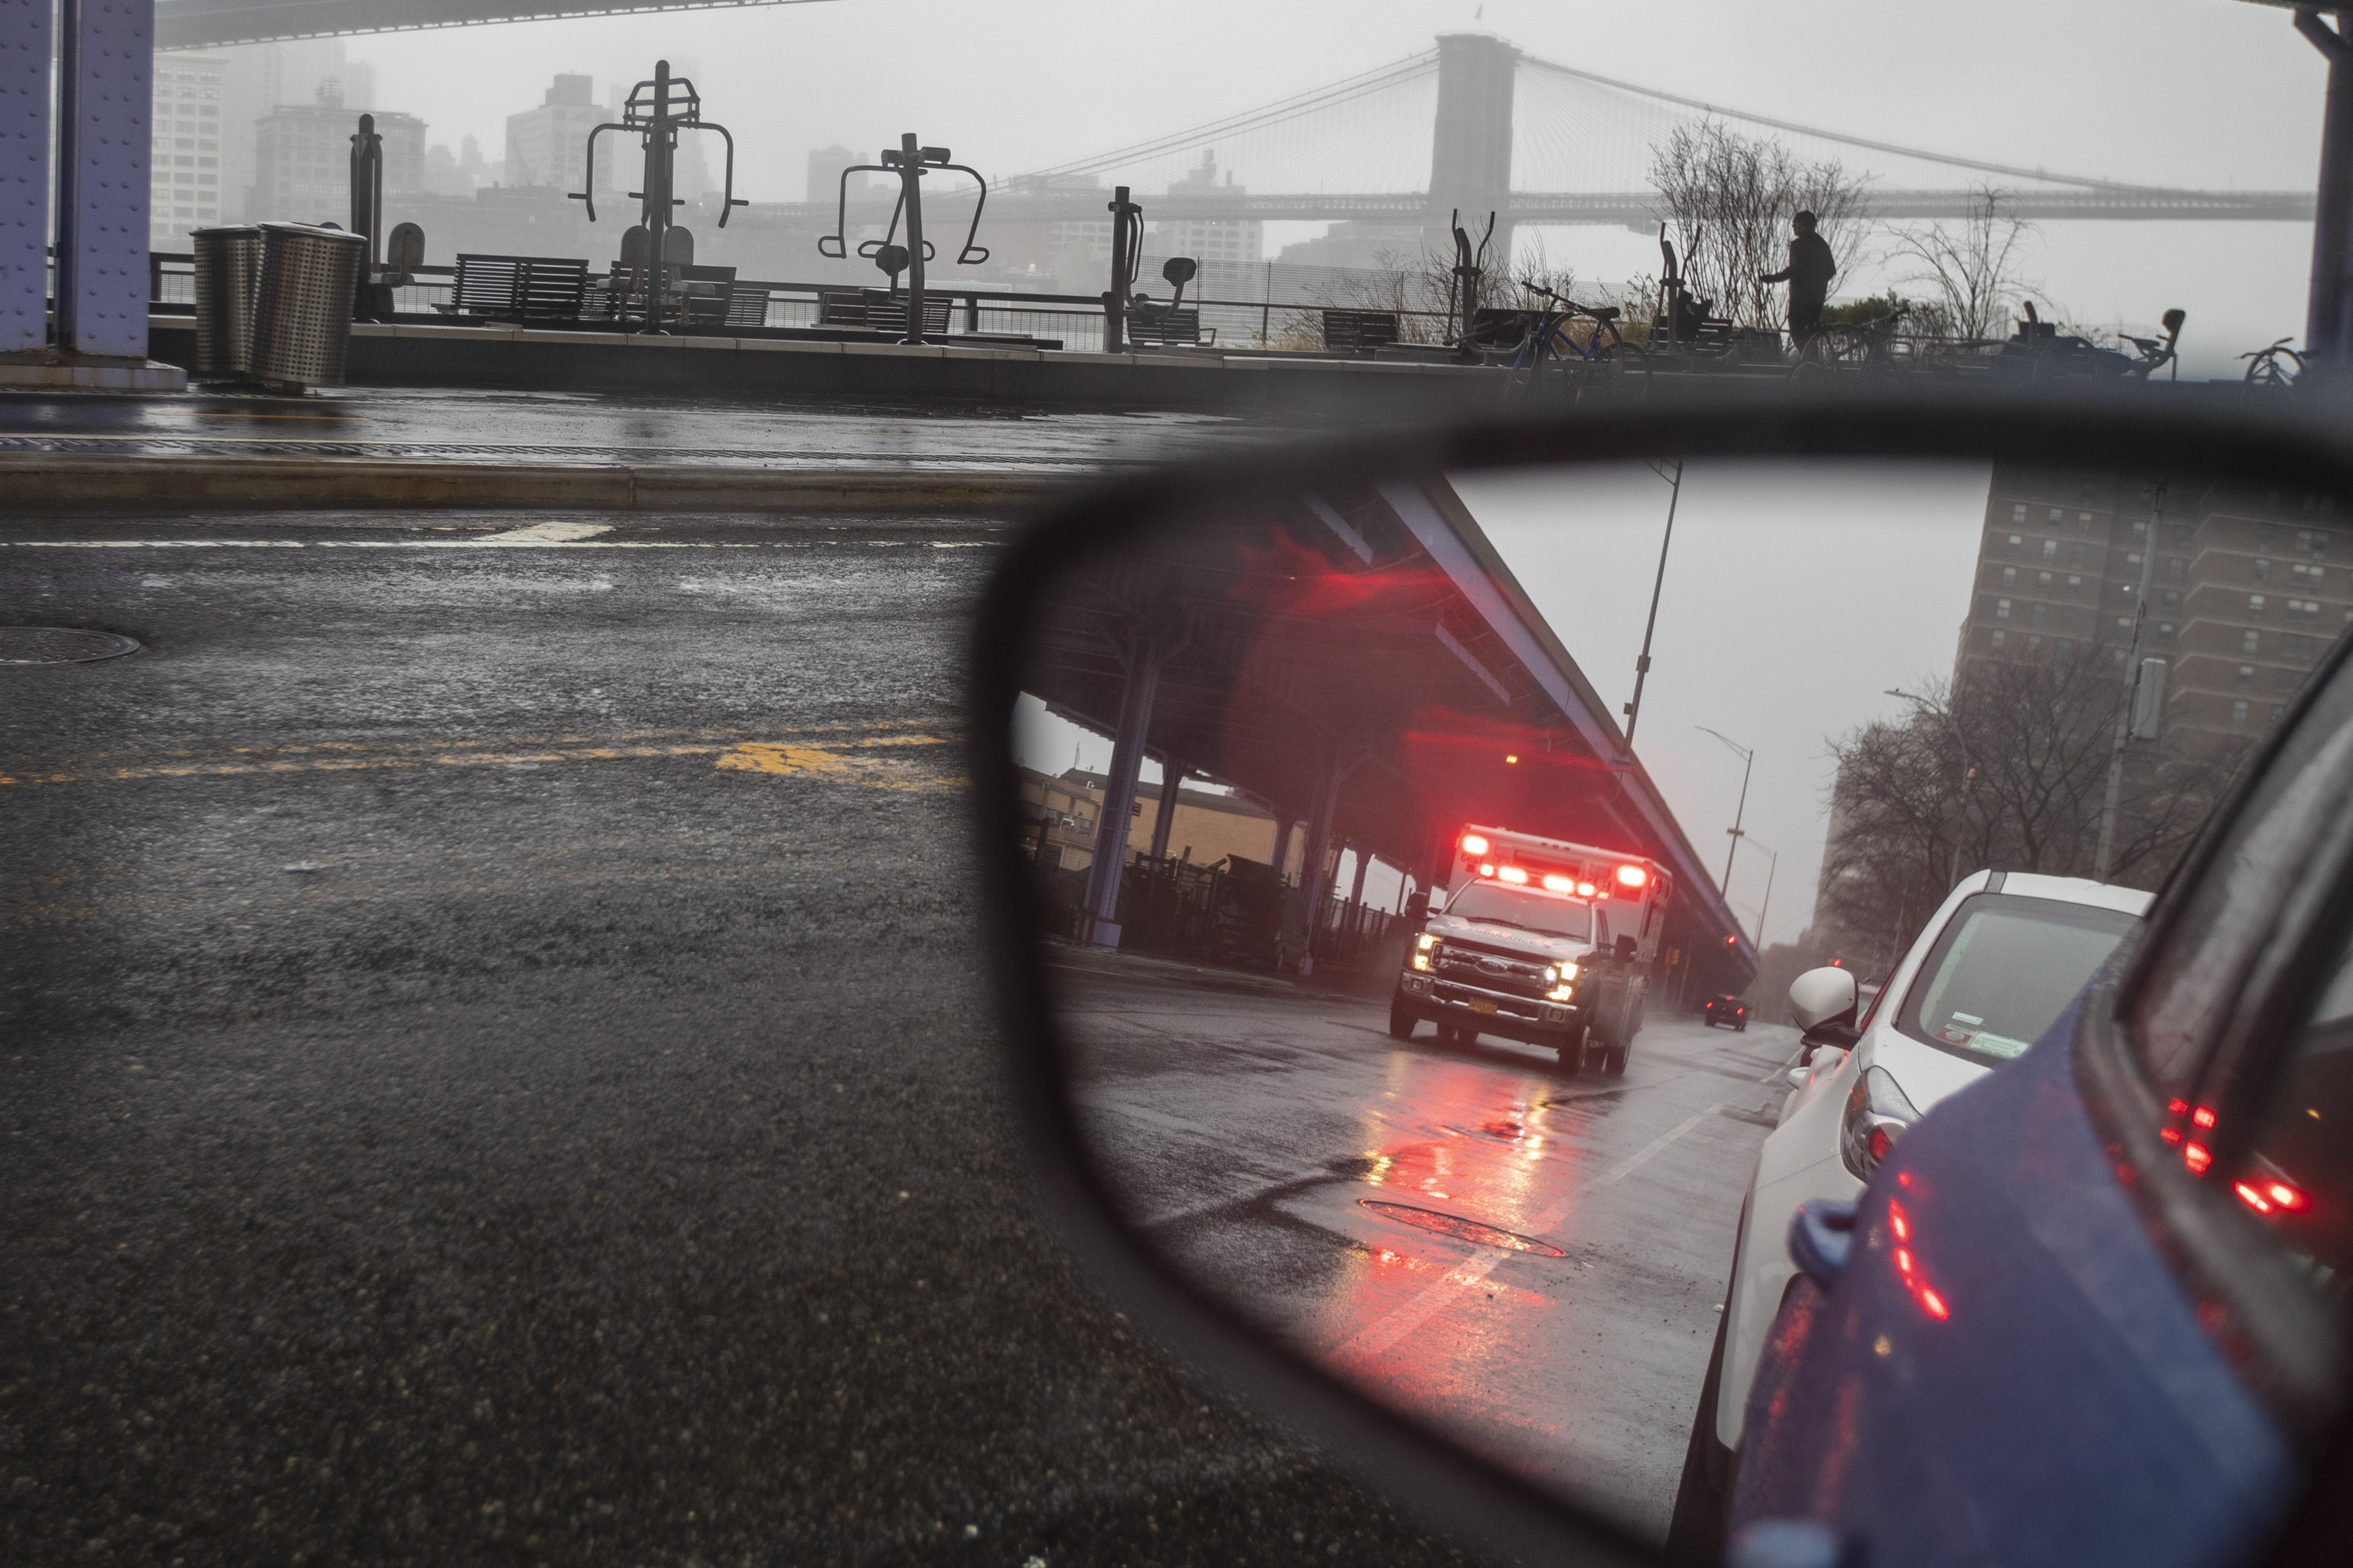 An ambulance is seen with it's emergency lights on in lower Manhattan, Sunday, March 29, 2020. The new coronavirus causes mild or moderate symptoms for most people, but for some, especially older adults and people with existing health problems, it can cause more severe illness or death.